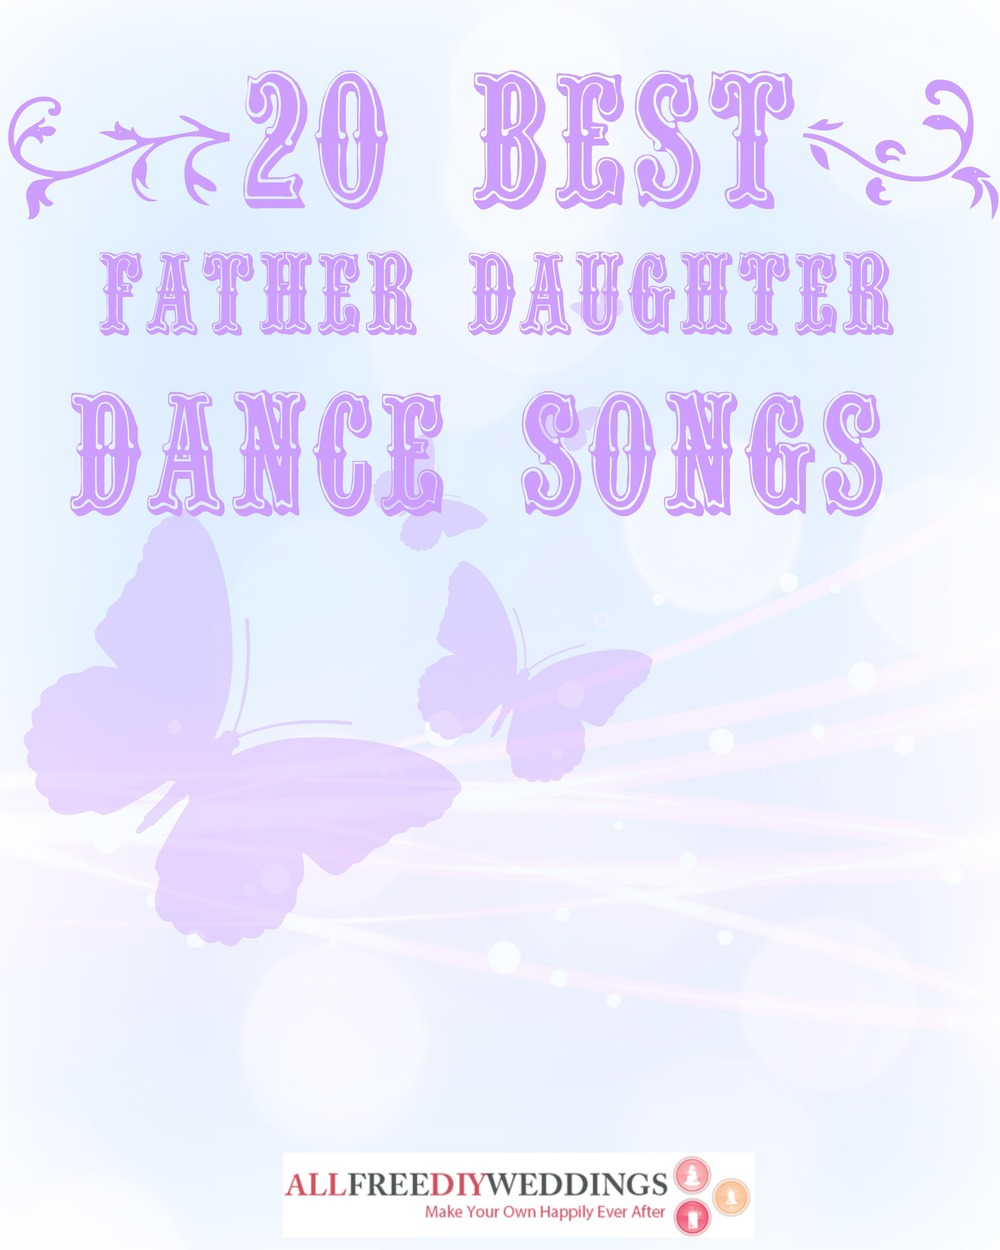 20 best father daughter